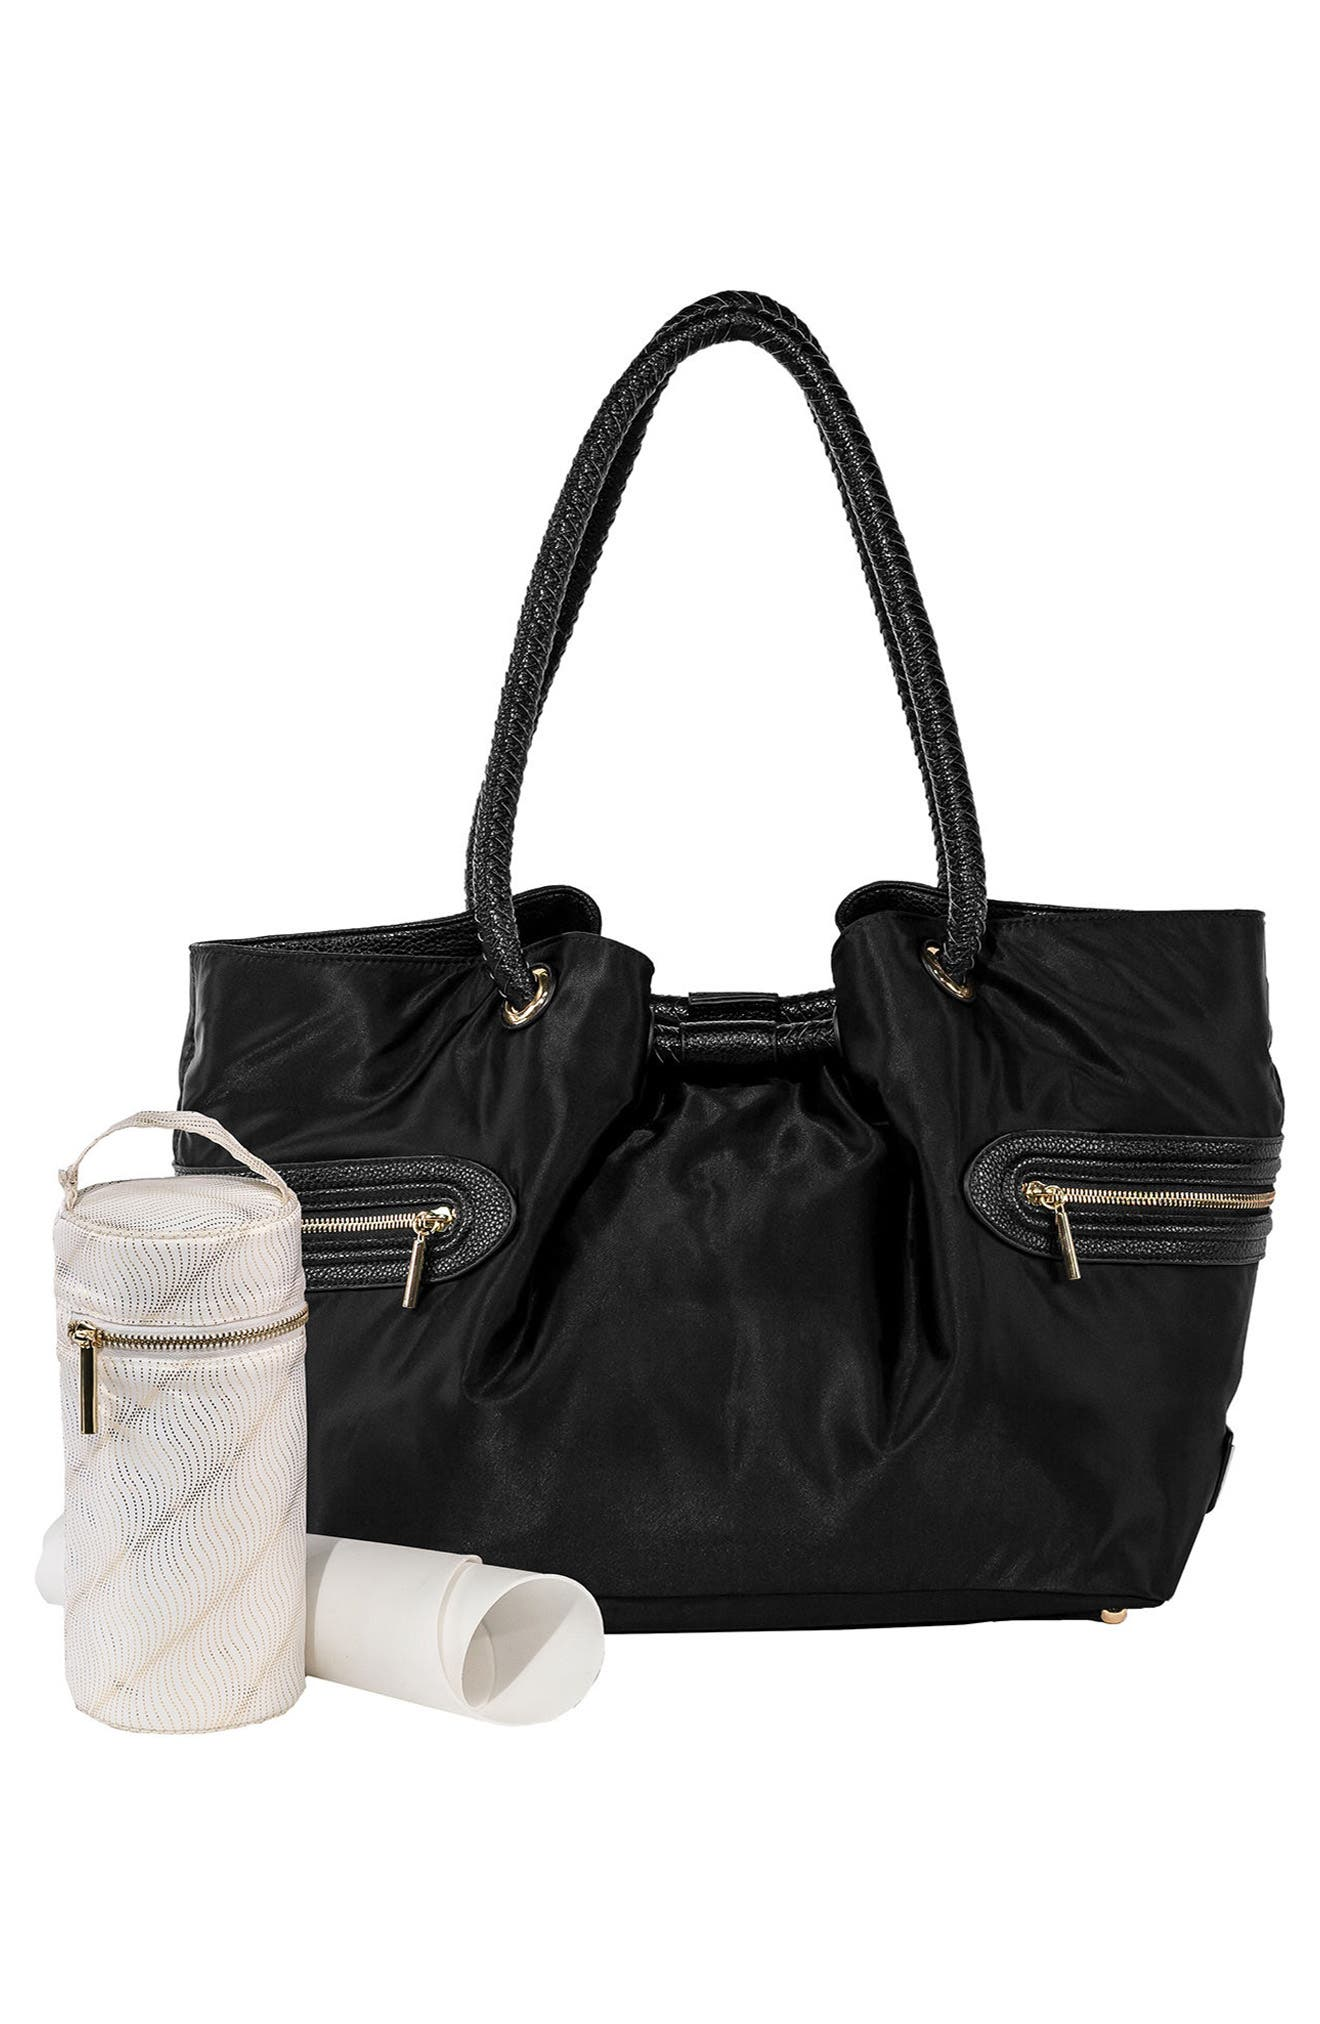 Addison Lane Diaper Bag,                             Alternate thumbnail 3, color,                             BLACK